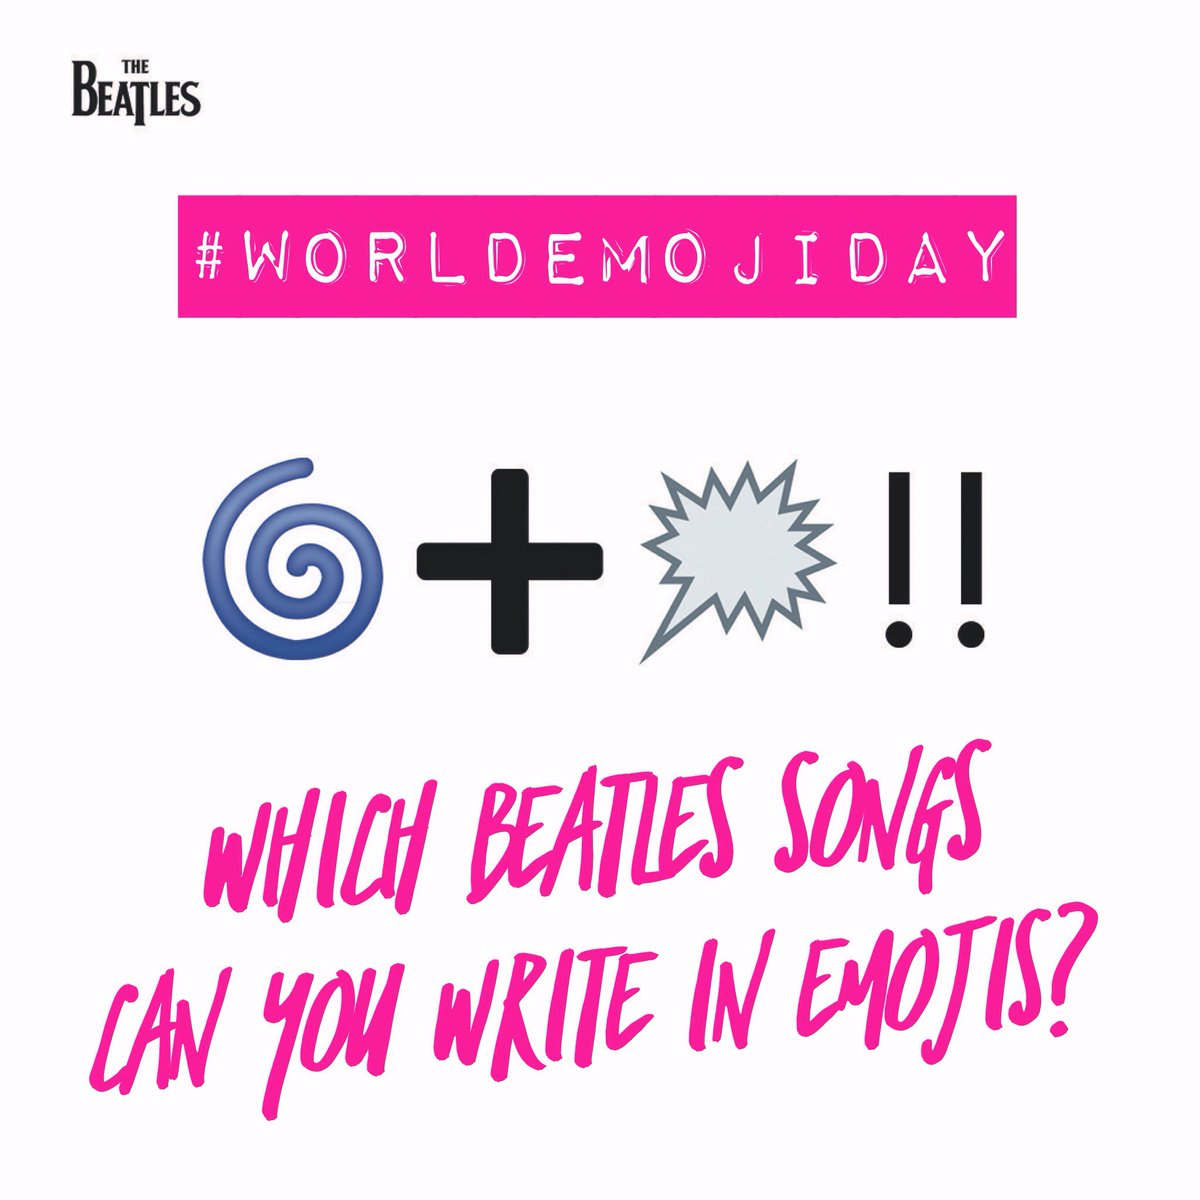 Its #WorldEmojiDay! Can you figure out which Beatles song weve written here in emojis? Once you have, we want to see your emoji #Beatles song titles!